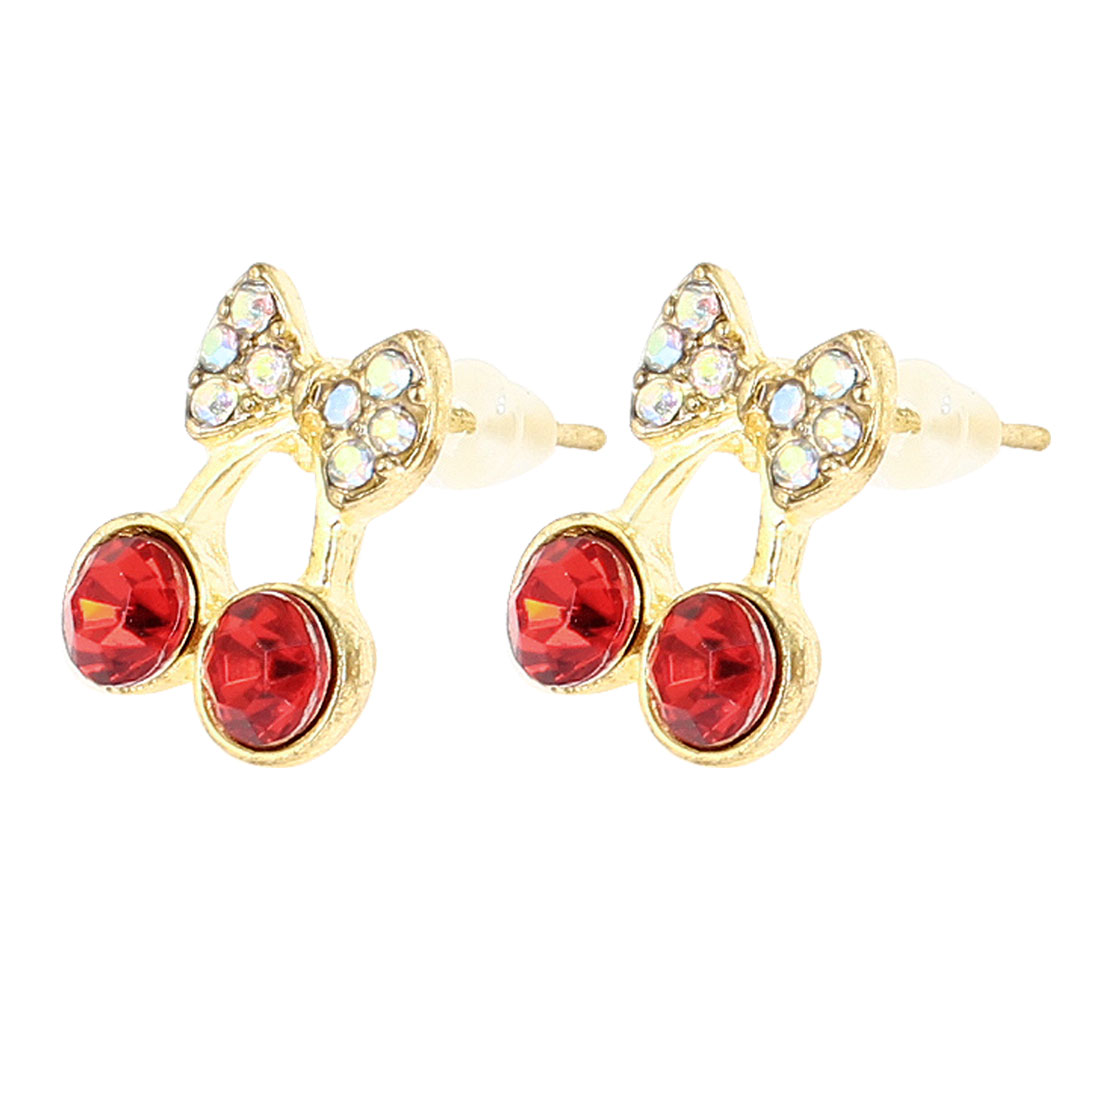 Women Girls Ear Ornament Gold Tone Red Cherry Design Stud Earrings Pair